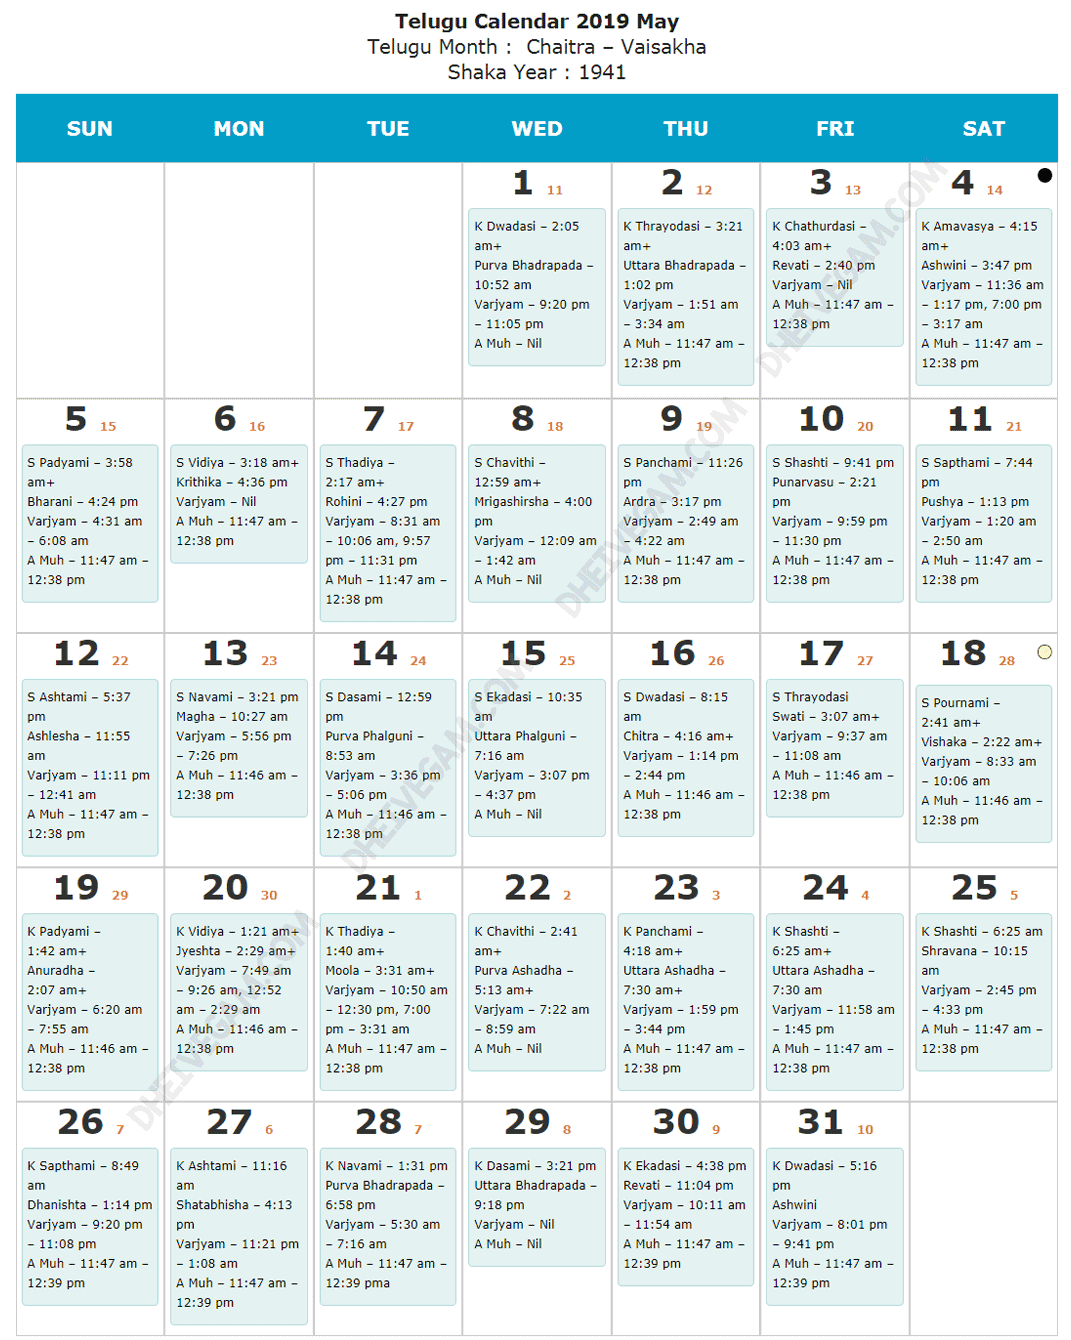 May 2019 Telugu calendar